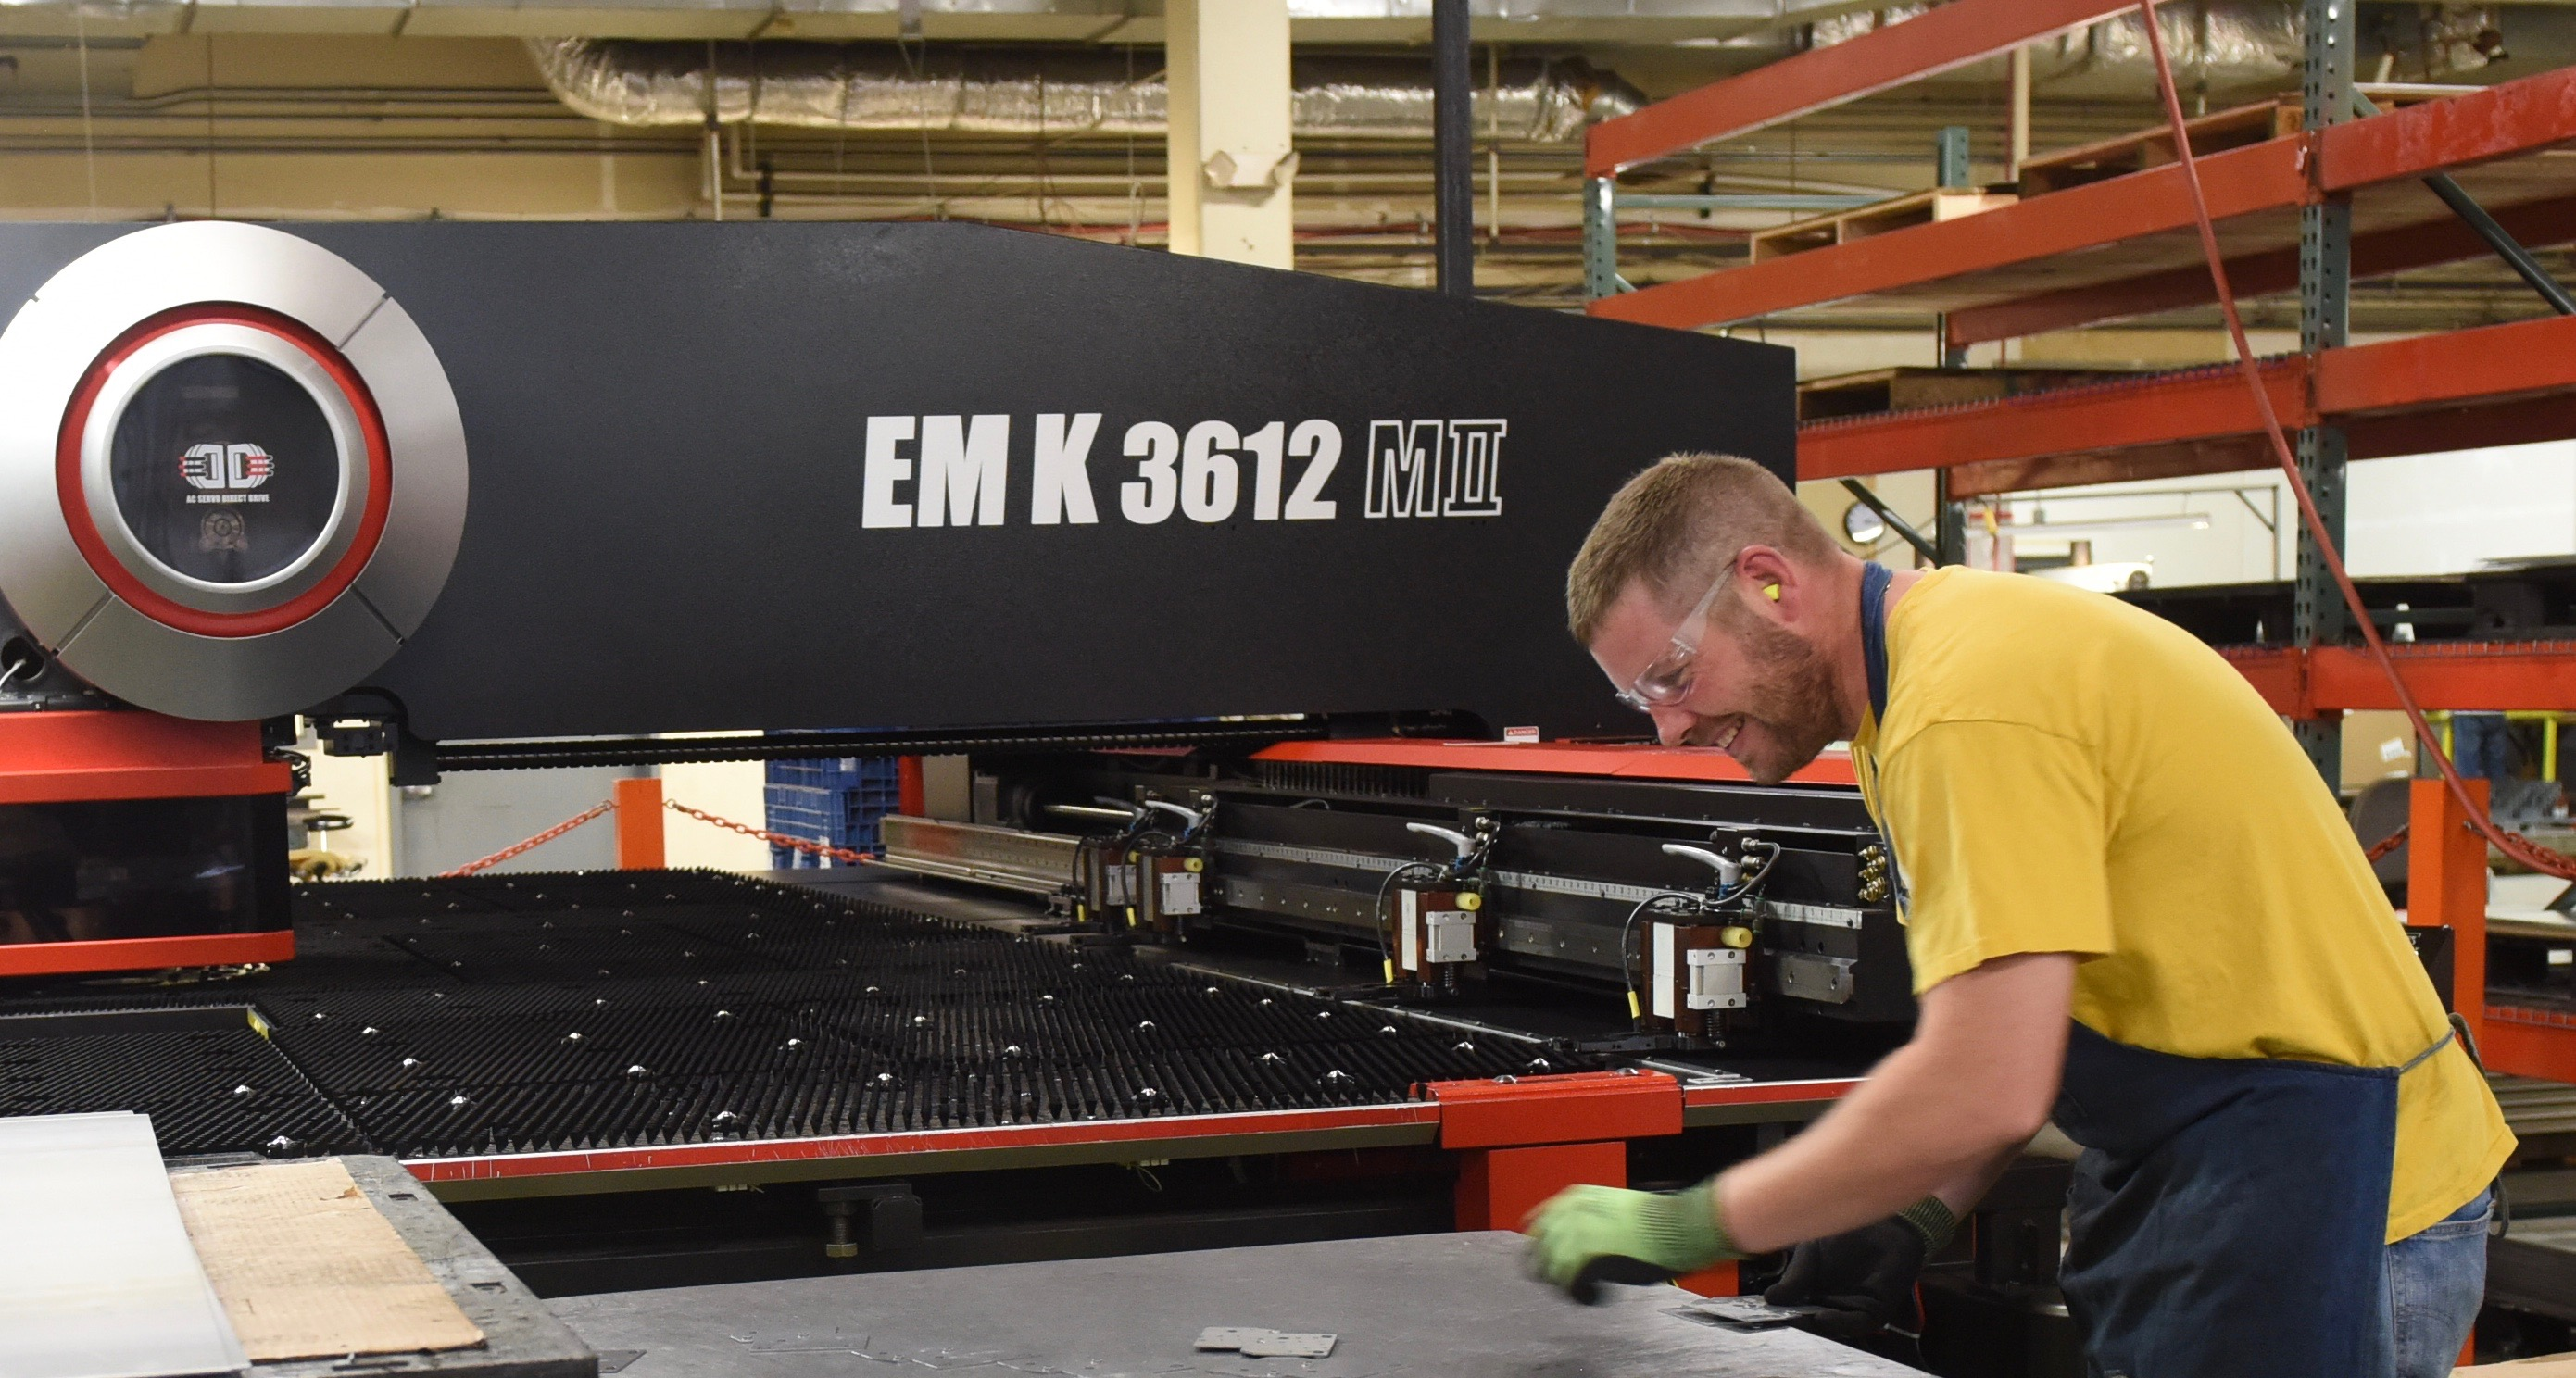 R&M Manufacturing Amada EMK Turret wiht In-Die Tapping Capability